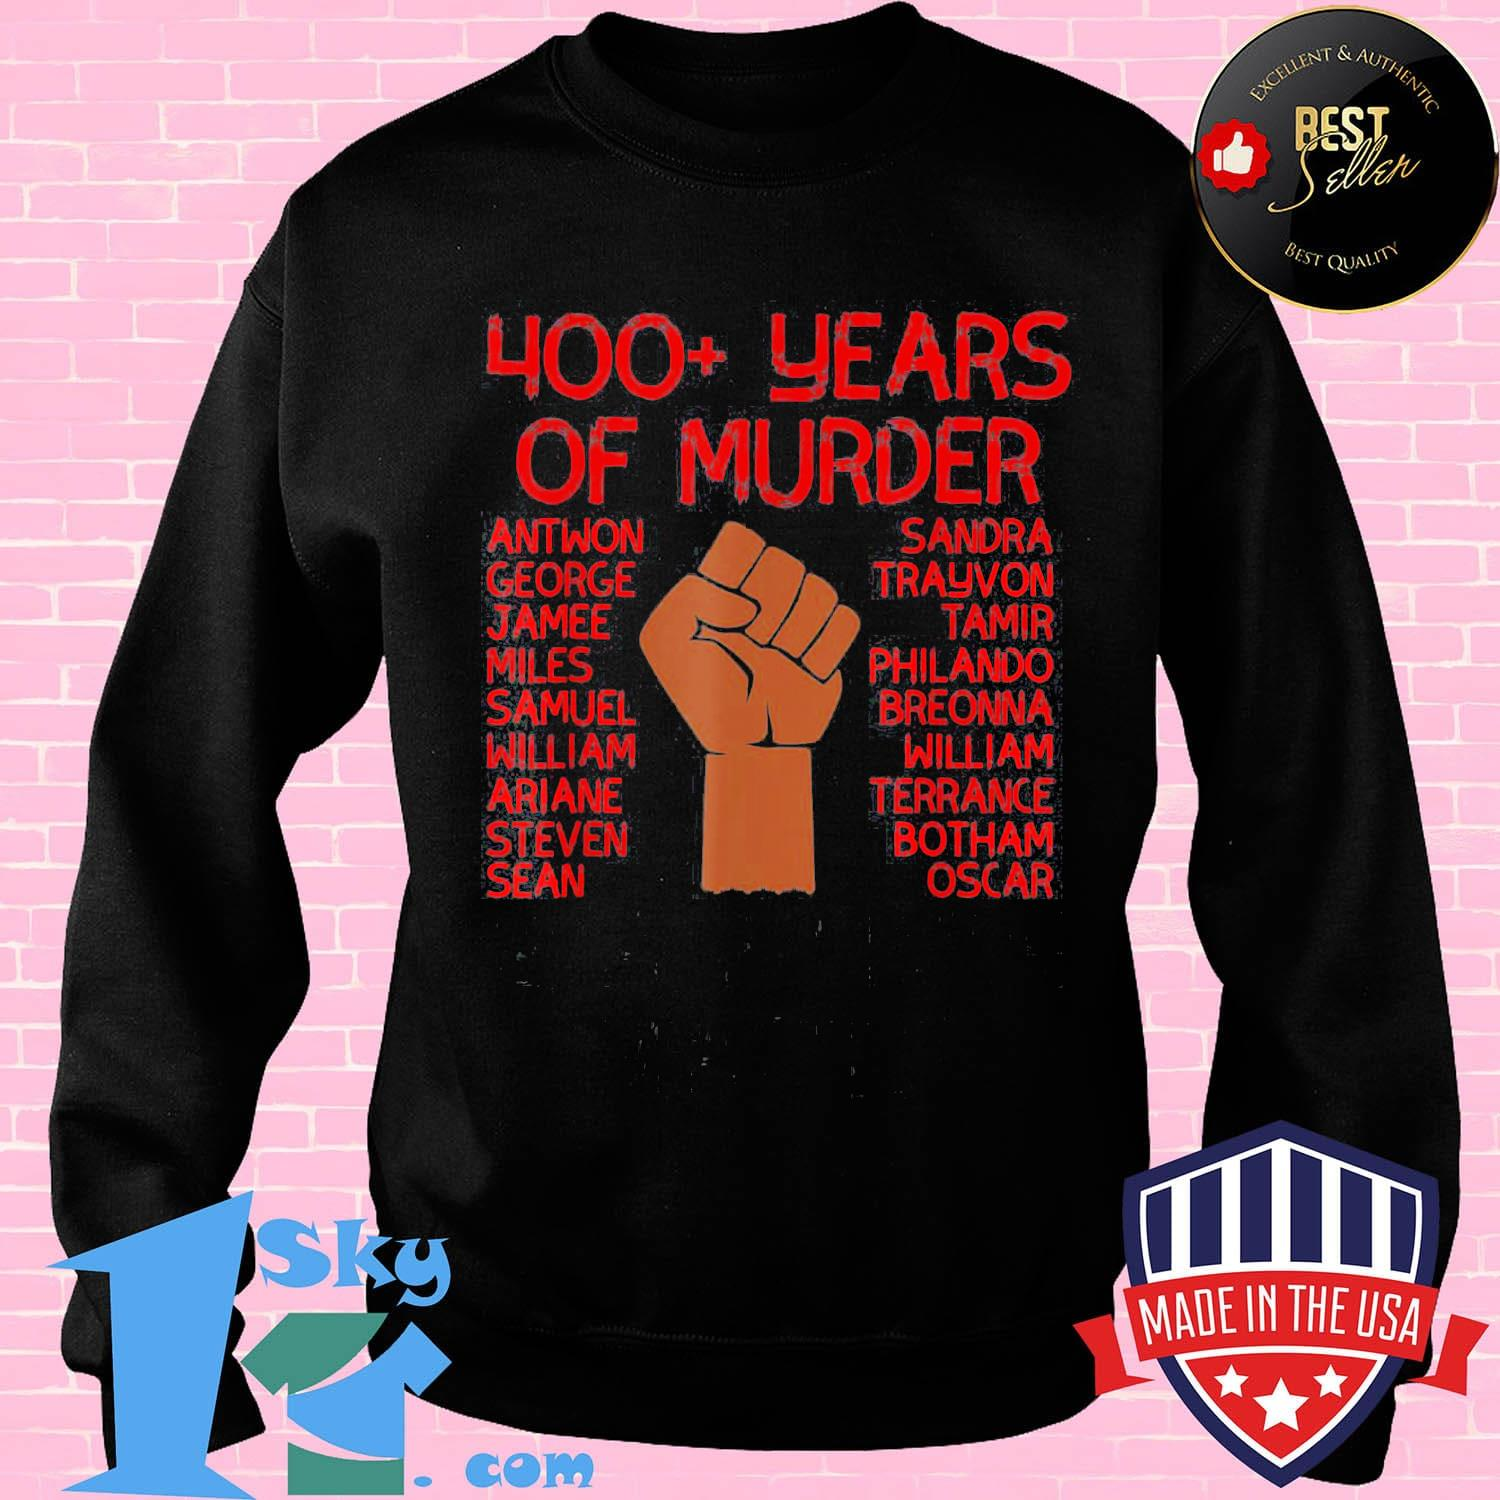 490d6a4c 400 years of murder antwon george jamee miles samuel william ariane steven sean shirt sweater - Shop trending - We offer all trend shirts - 1SkyTee